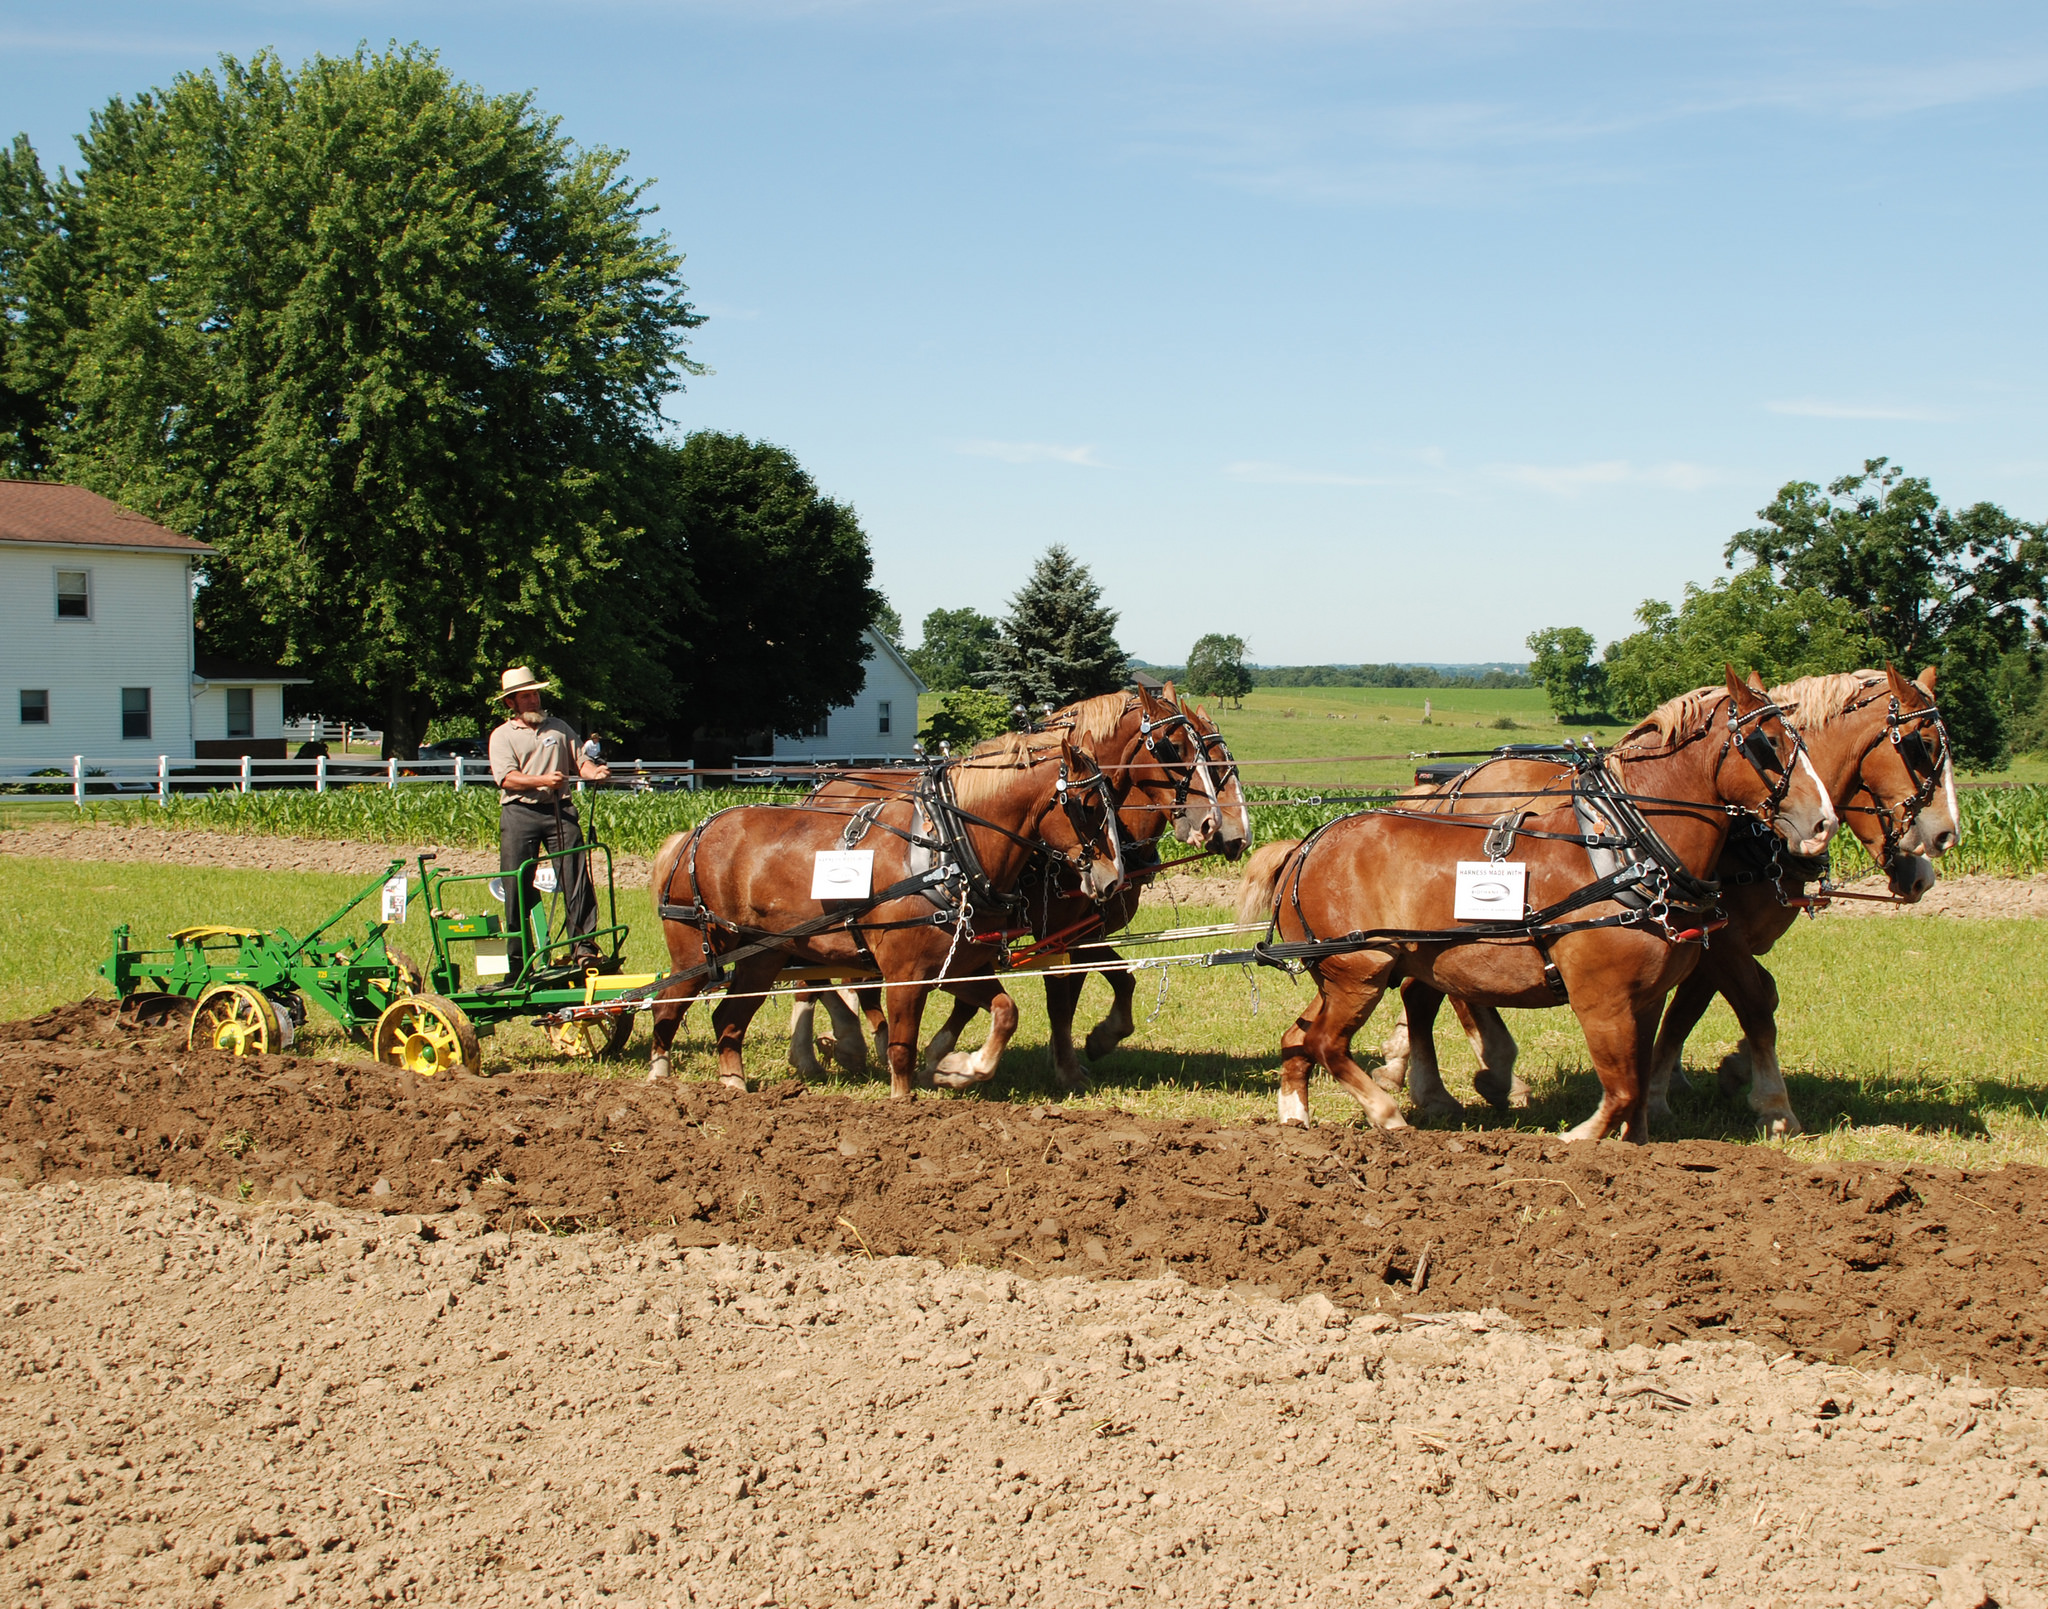 An Amish gentleman plowing land with a team of horses.